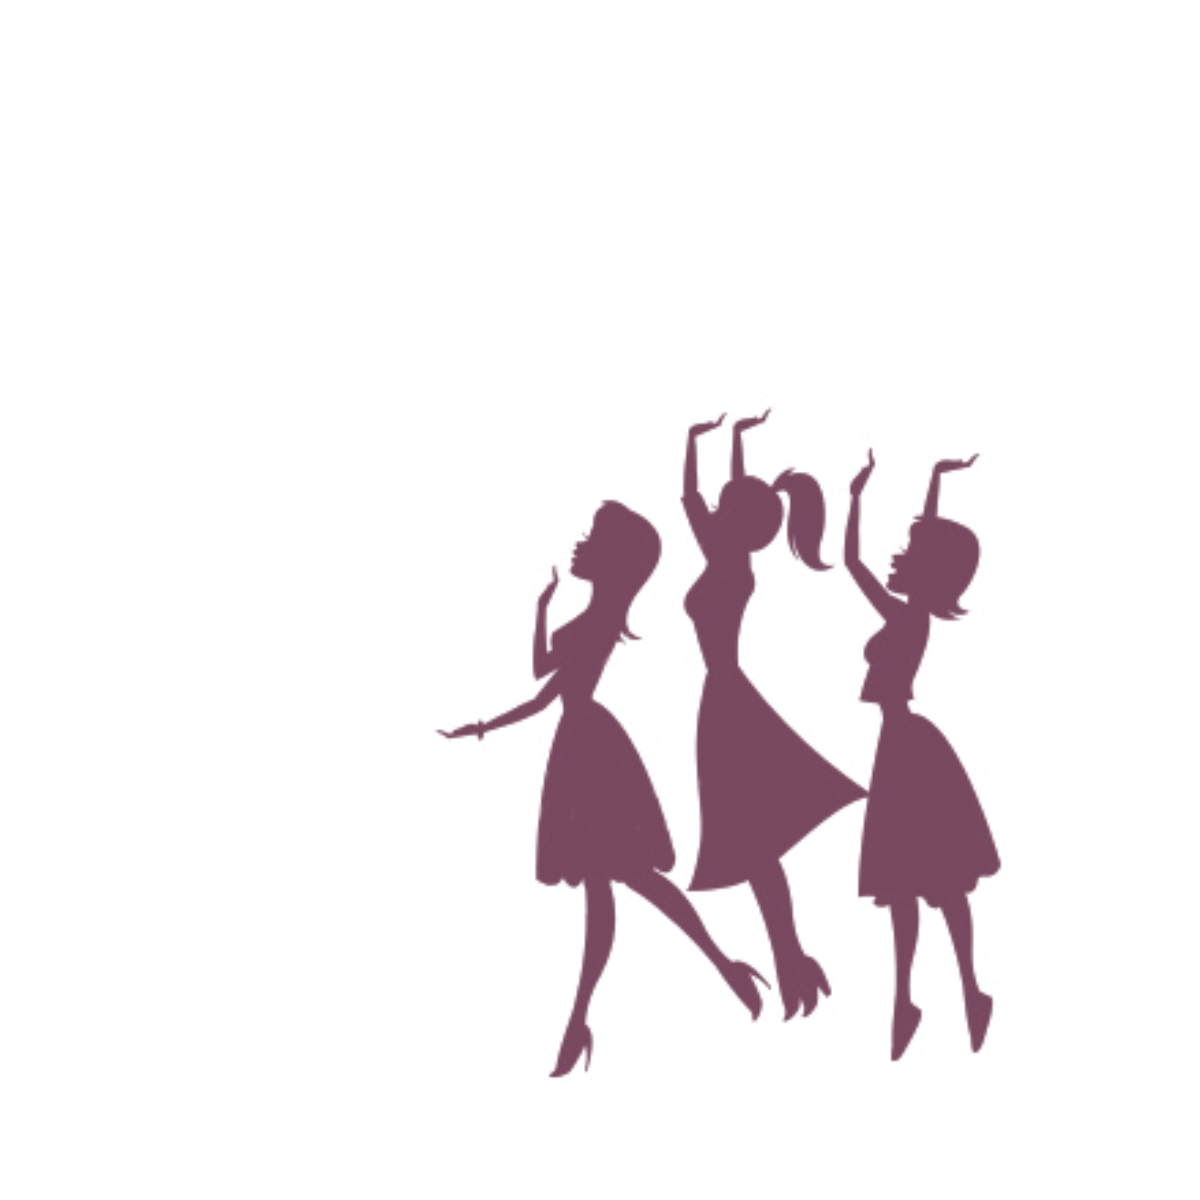 Bridal party silhouette clipart png library download Bridal Party Silhouette Clip Art Free Bridesmaid Clipart - Free Clipart png library download